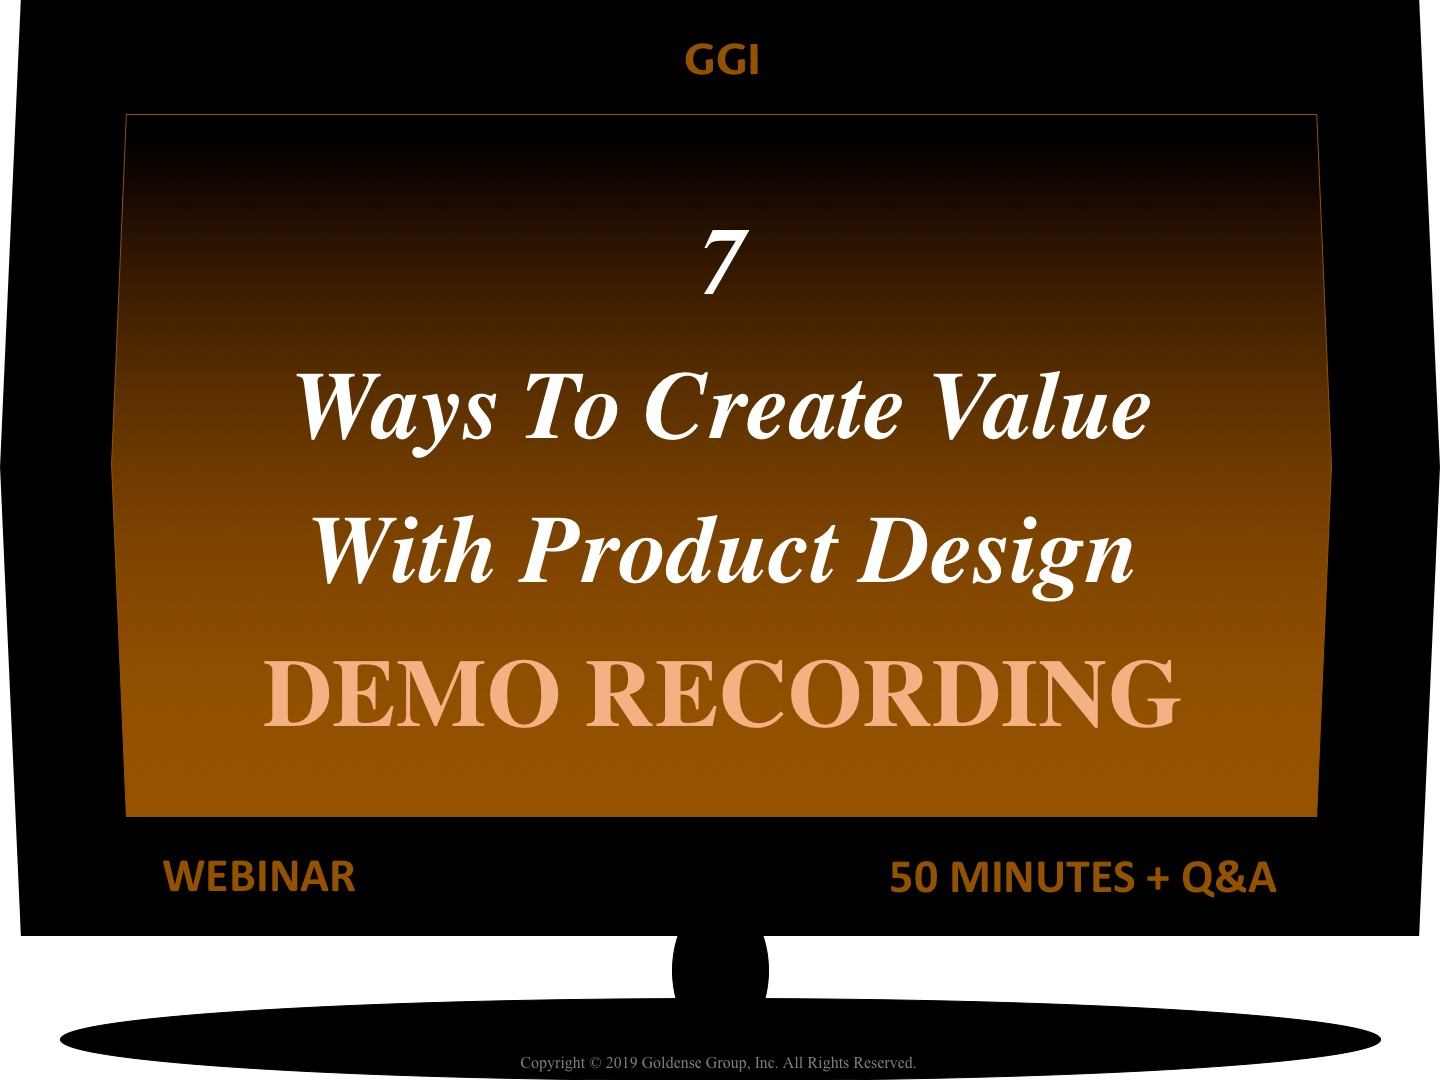 7 Ways To Create Value With Product Design